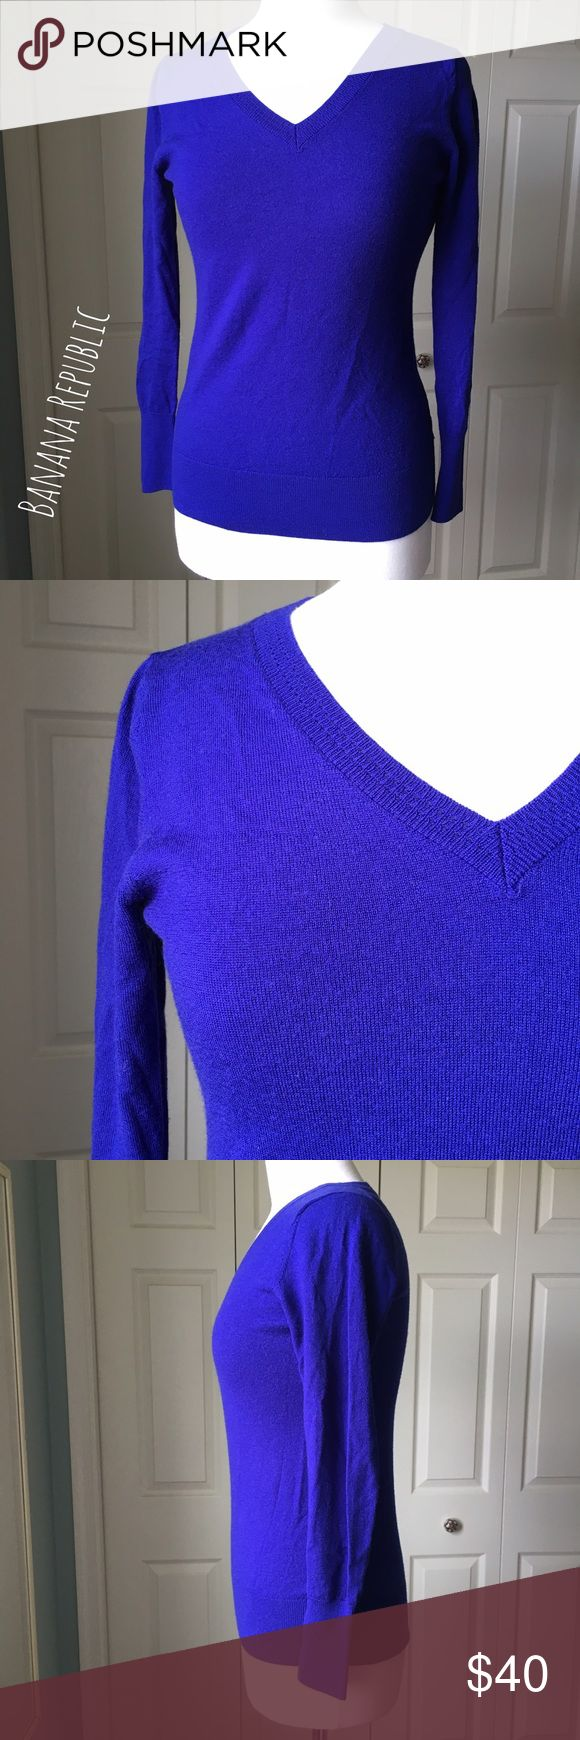 "Banana Republic Cobalt Blue Merino Wool Sweater Classy cobalt blue wool sweater by Banana Republic. ▪️15"" shoulder to shoulder ▪️25"" long ▪️Fits like a Small ▪️In great condition  🚭 Smoke-free home 📬 Ships by next day 💲 Price negotiable  🔁 Open to trades  💟Happy Poshing!💟 Banana Republic Sweaters V-Necks"